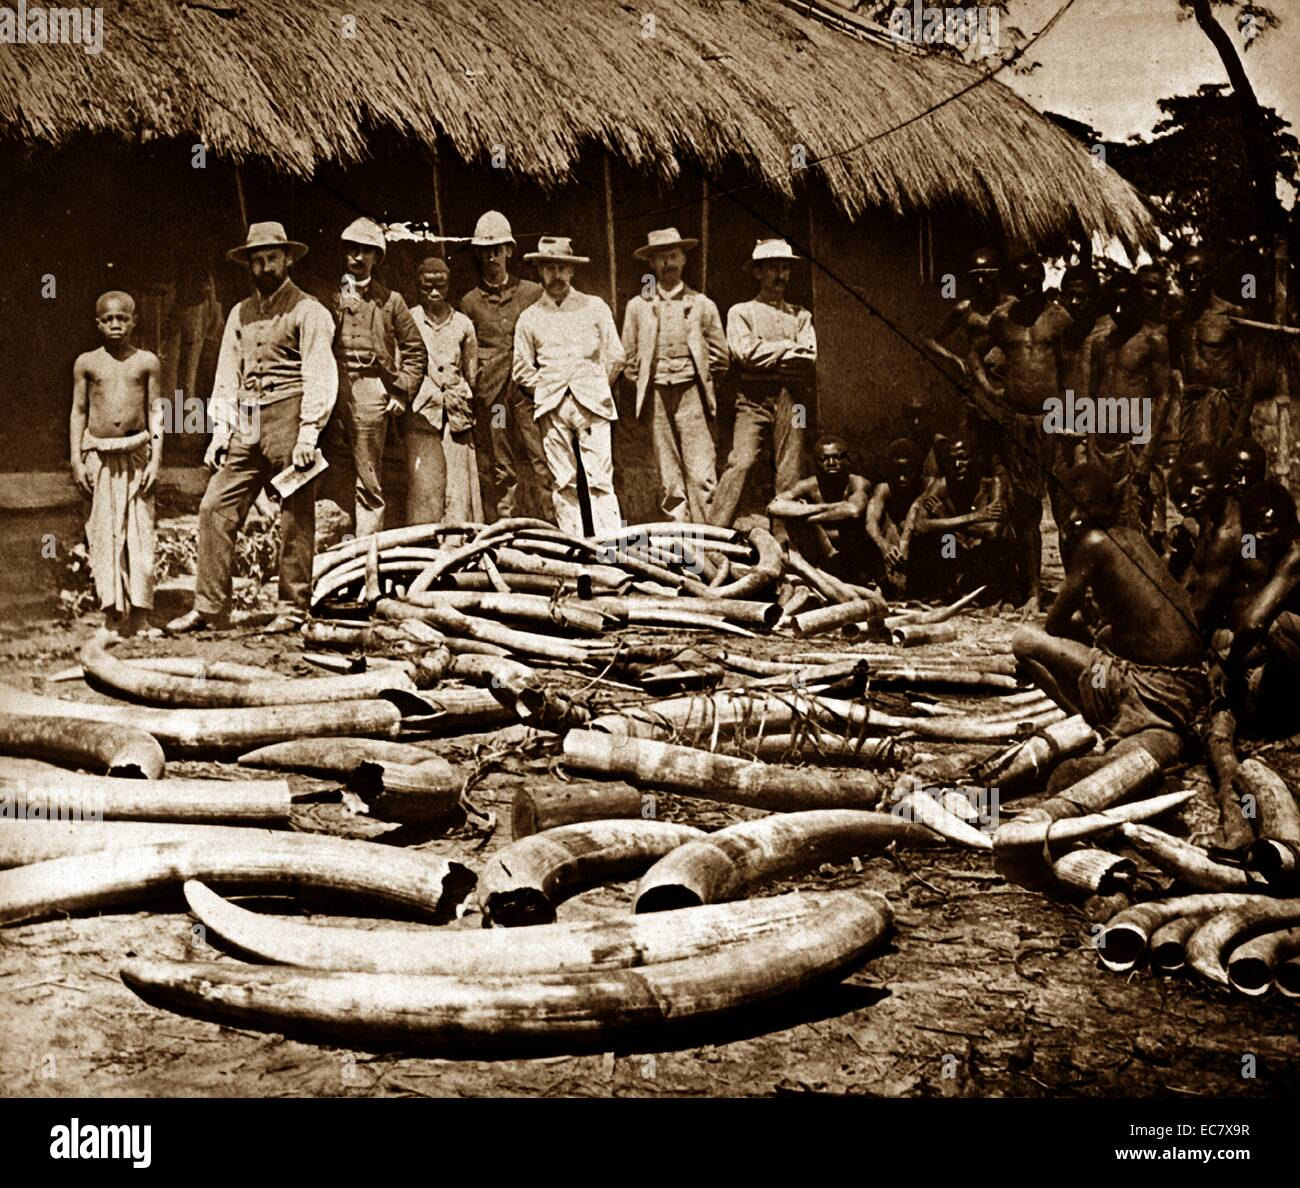 Belgian colonial period Congo. Africa became a centre for ivory hunting from elephants killed for sport;   or ivory - Stock Image